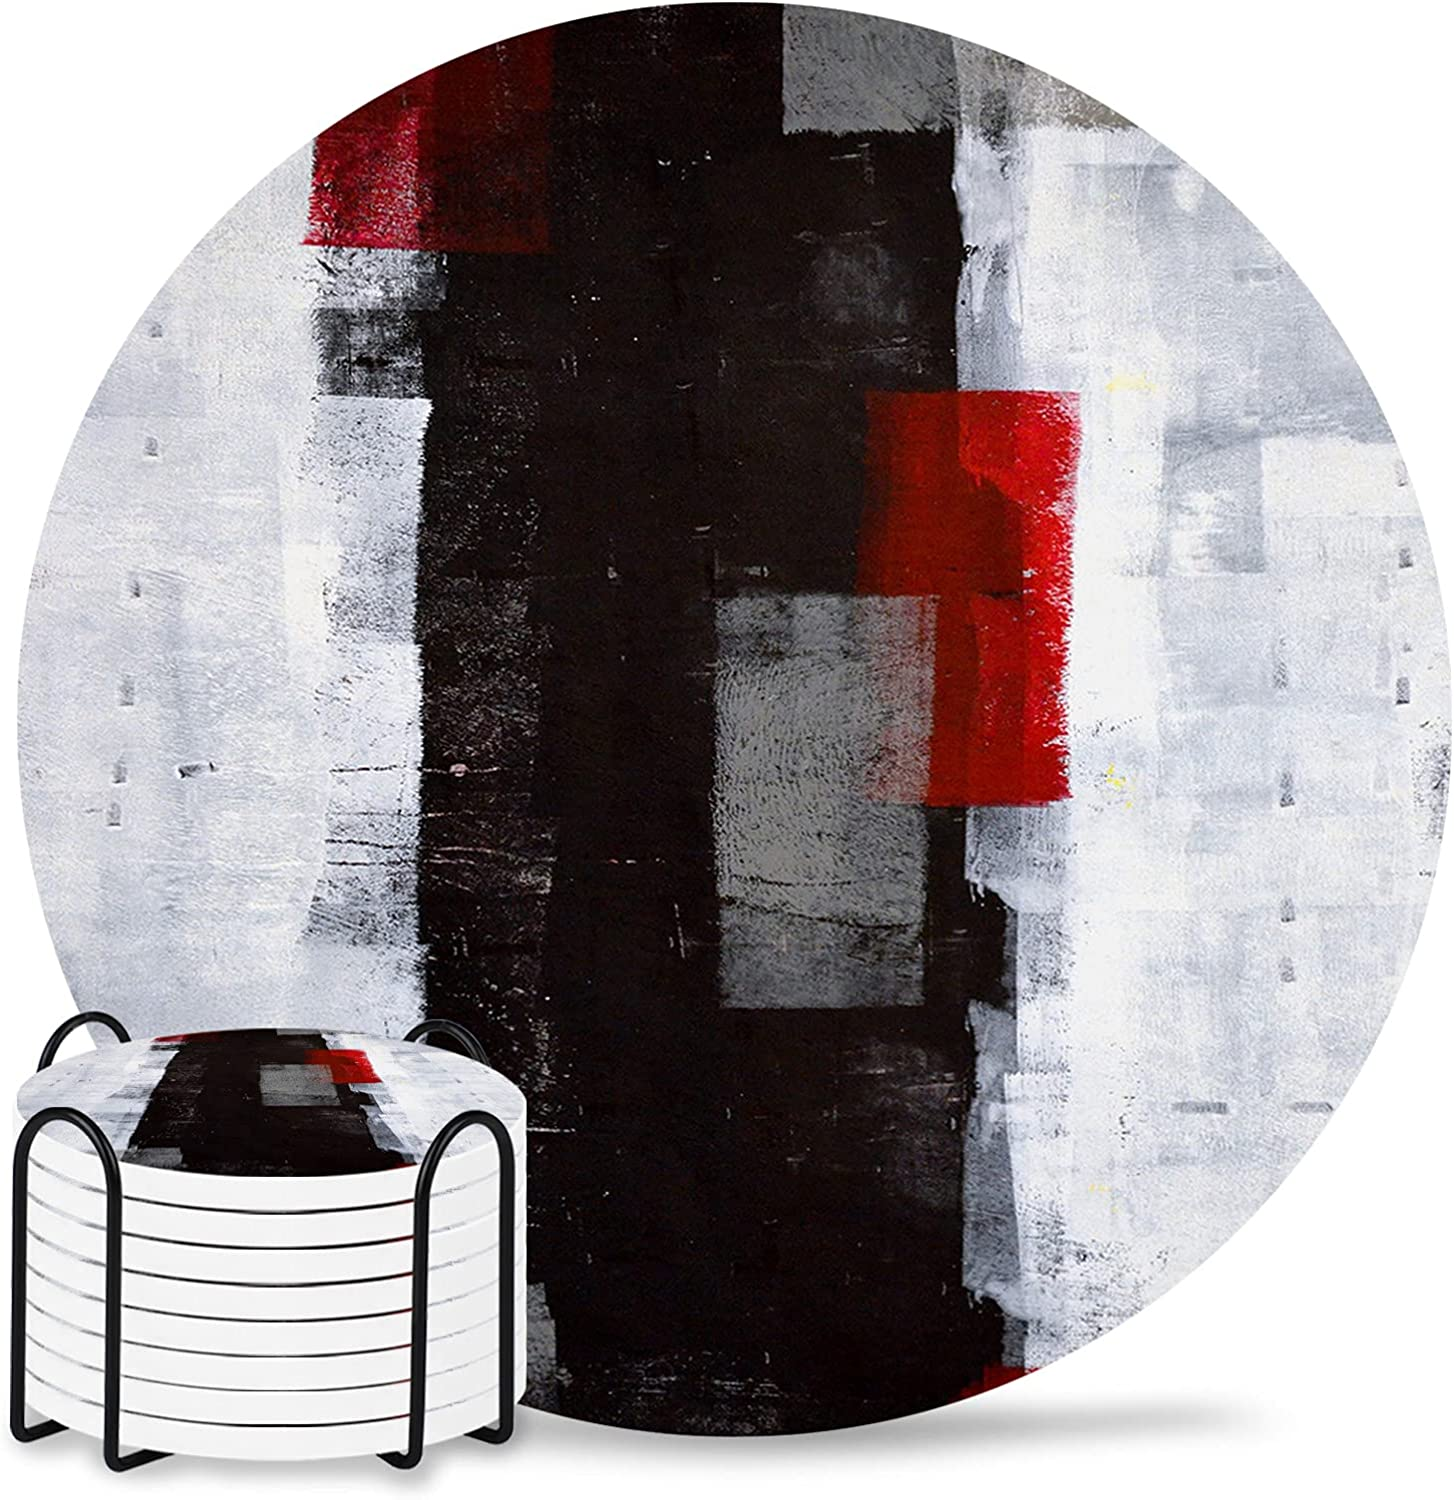 Finally resale start Abstract Coaster for Drinks 4 Inch Drink Pad Absorbent Ceramic Ranking TOP2